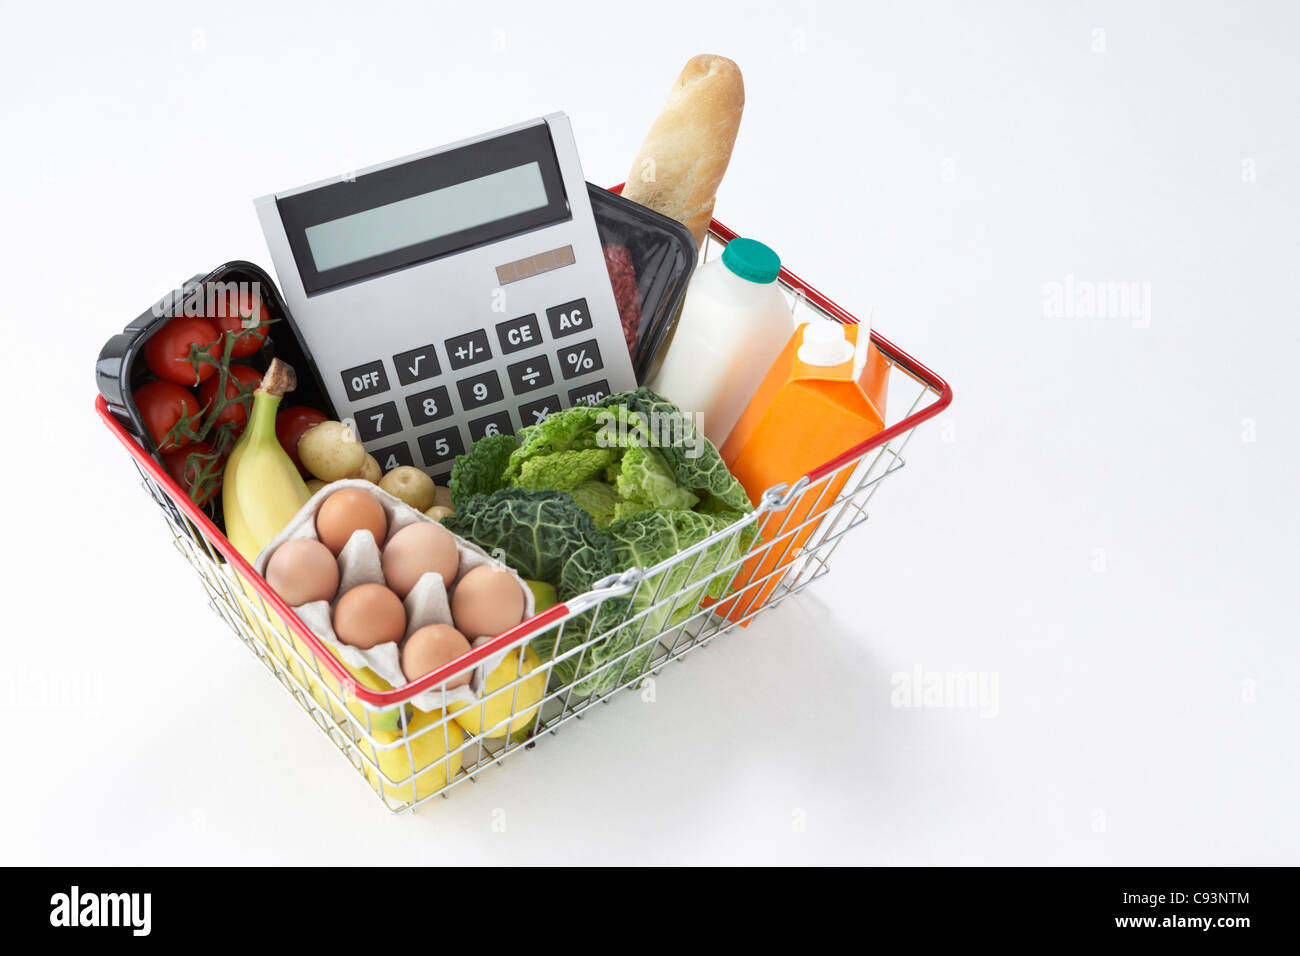 Basket of groceries and calculator - Stock Image